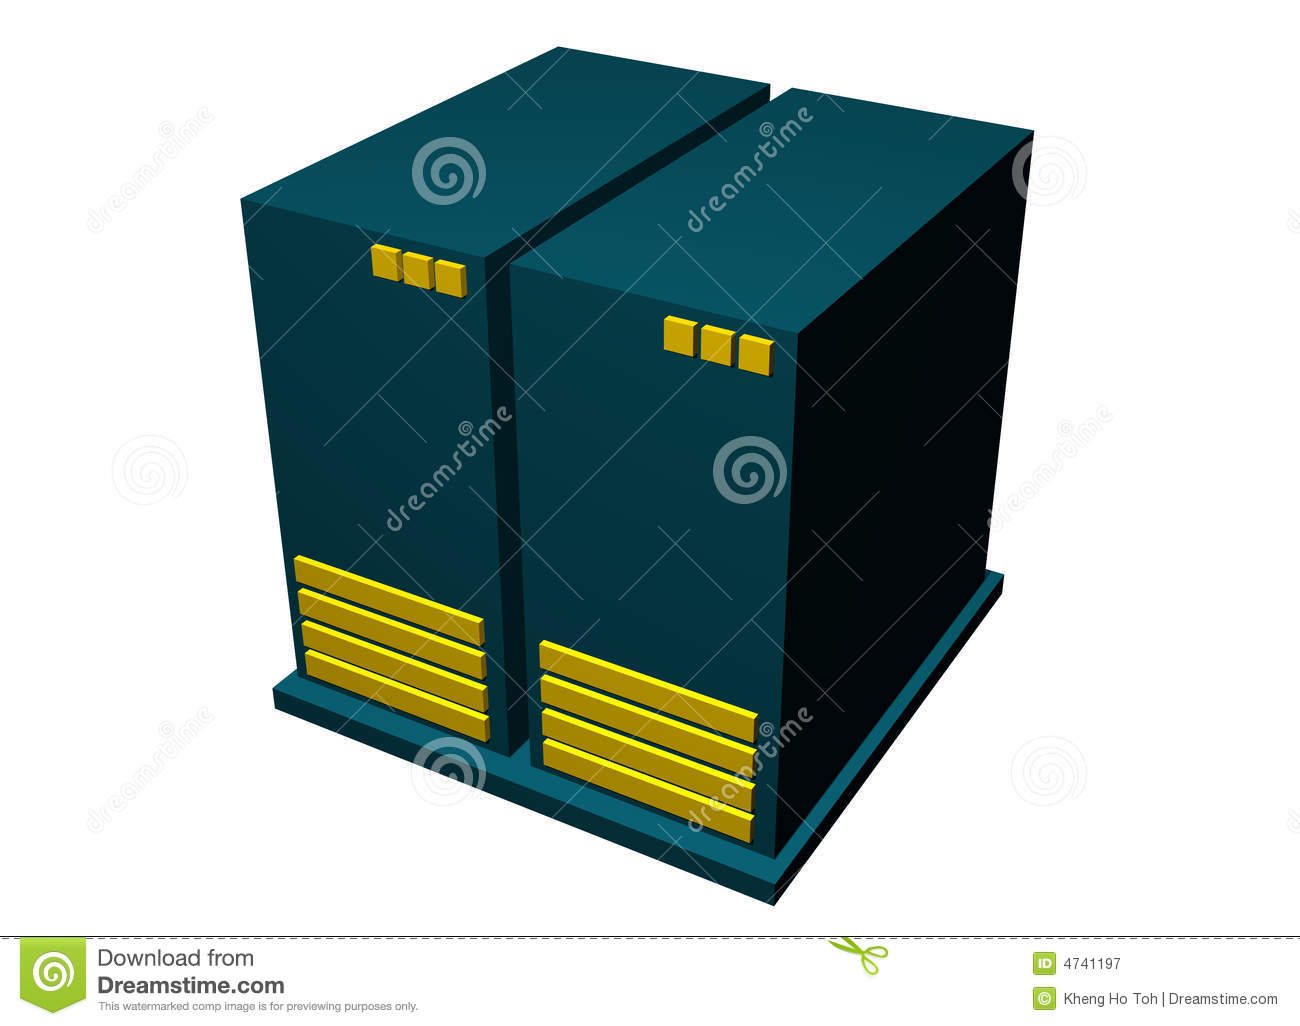 Server computer clipart free download best server computer 1300x1026 computer server clipart 101 clip art ccuart Choice Image